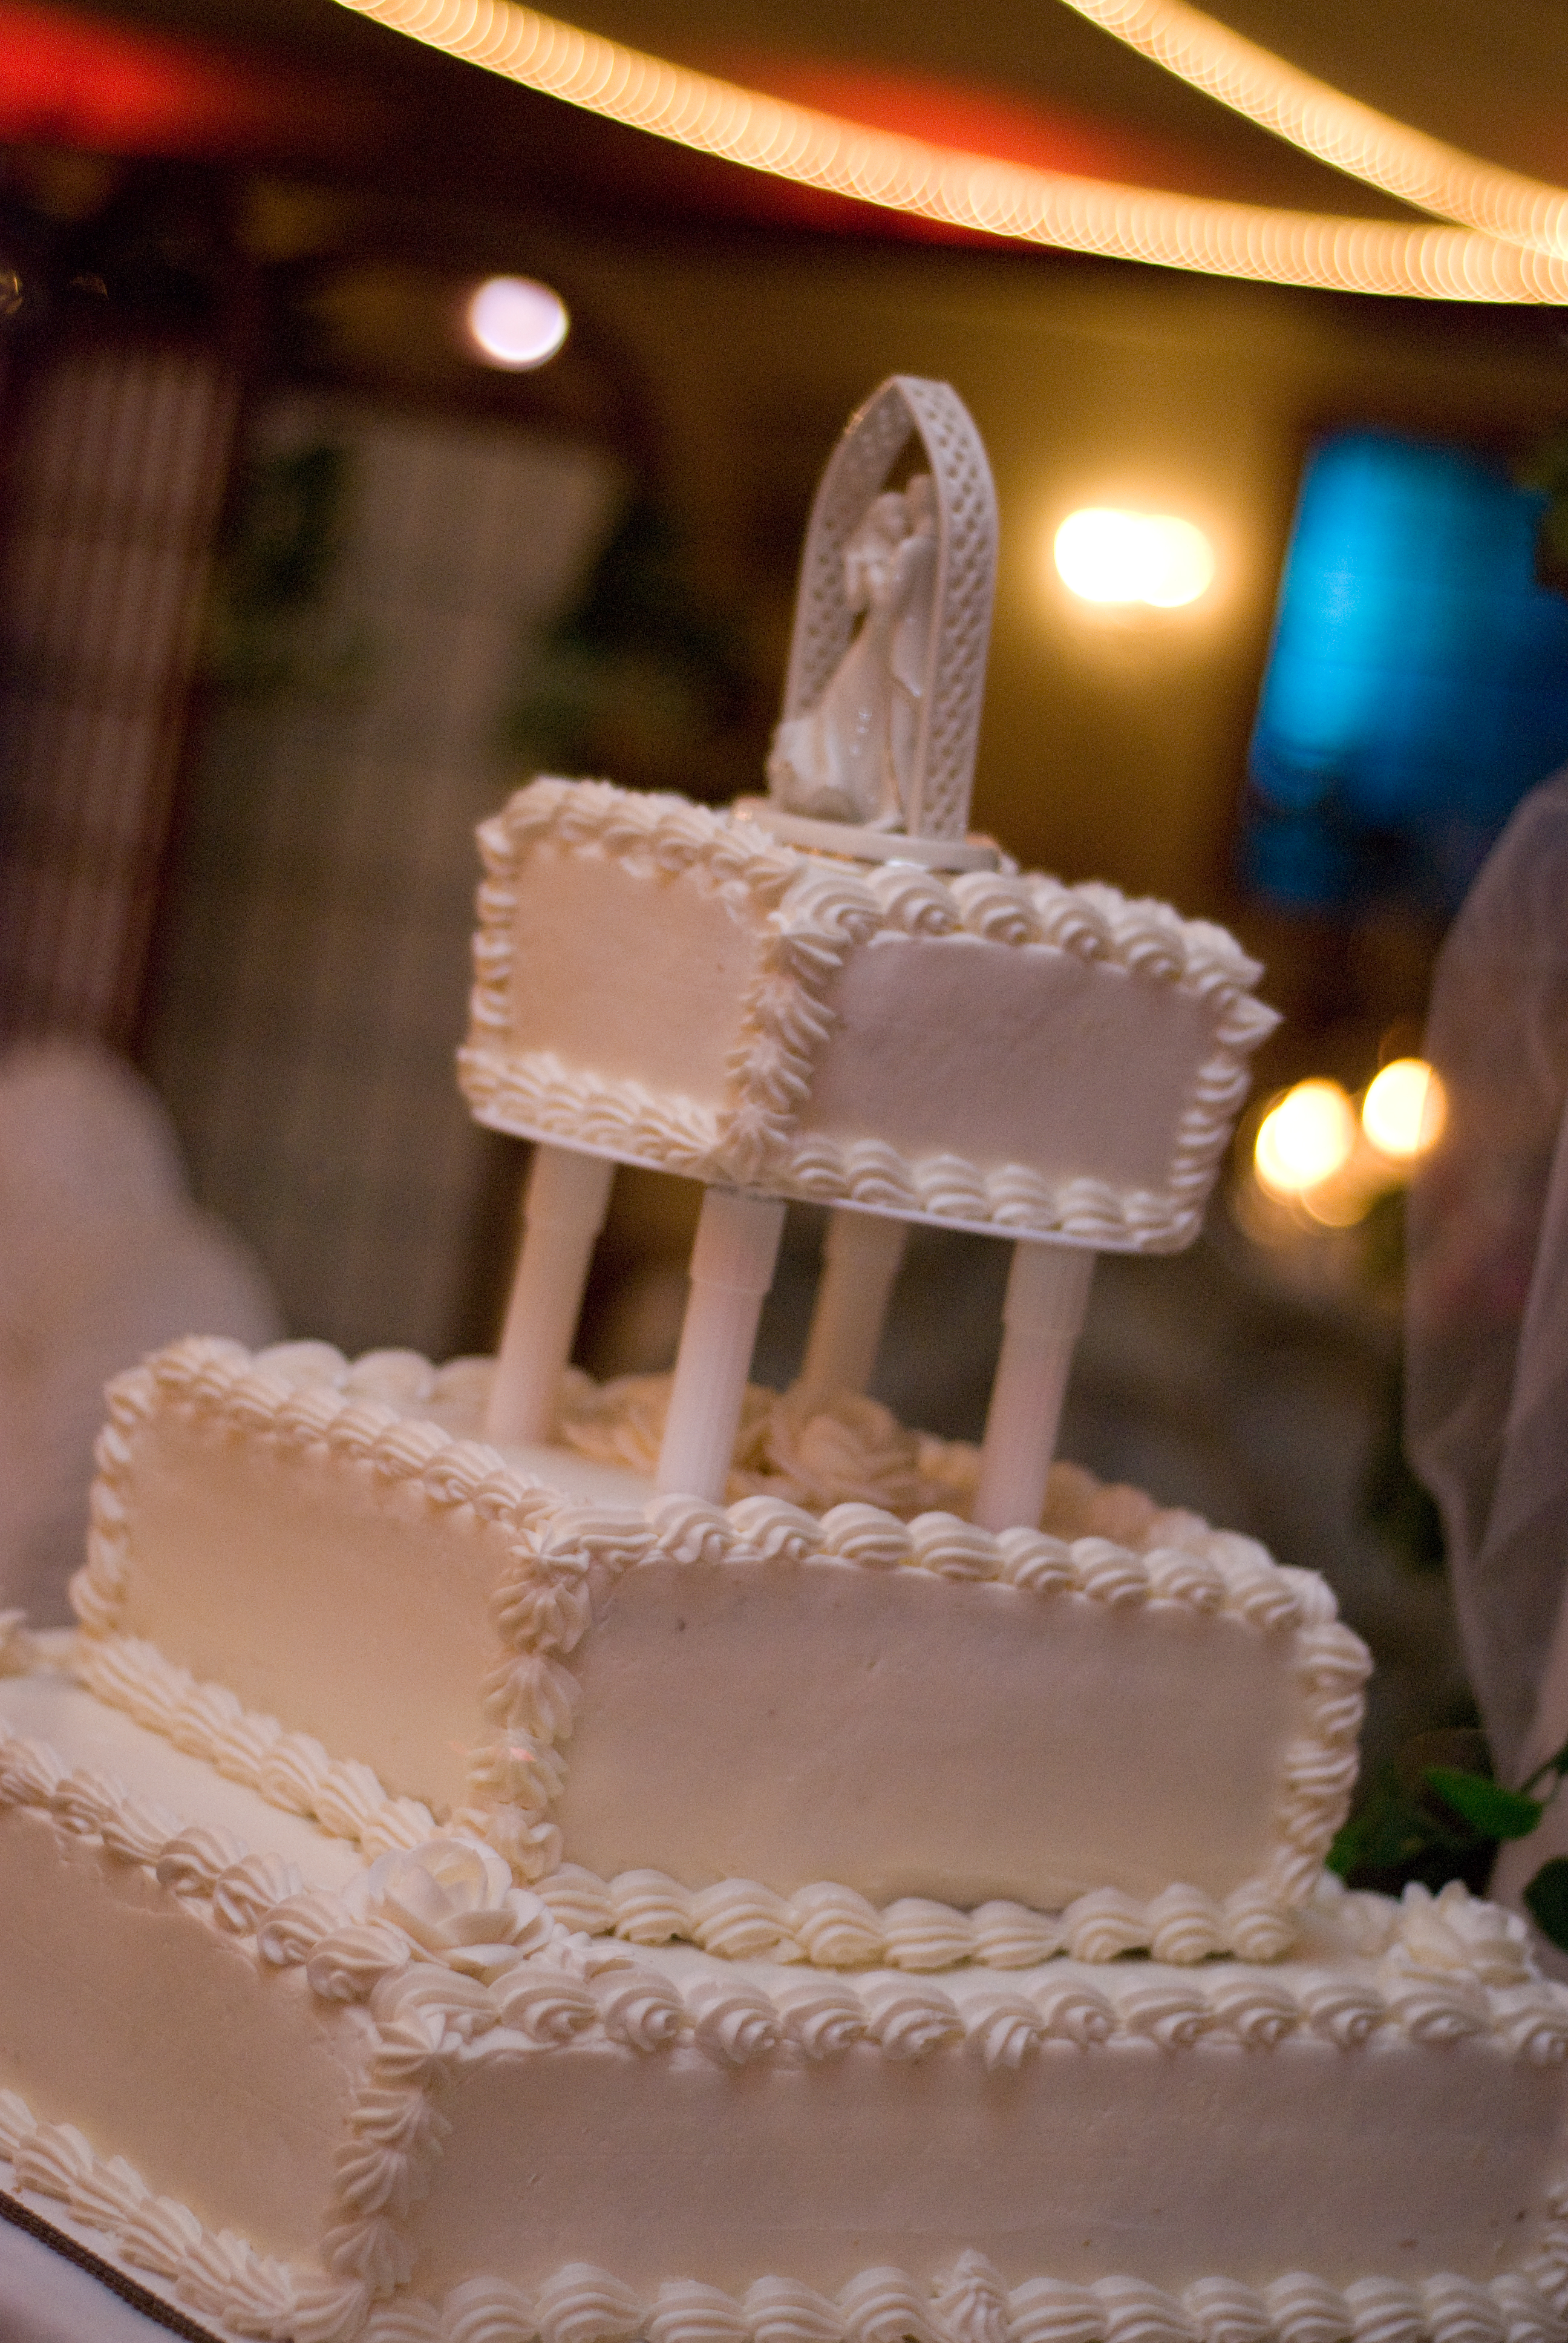 Cakes, cake, Eric hauser photography